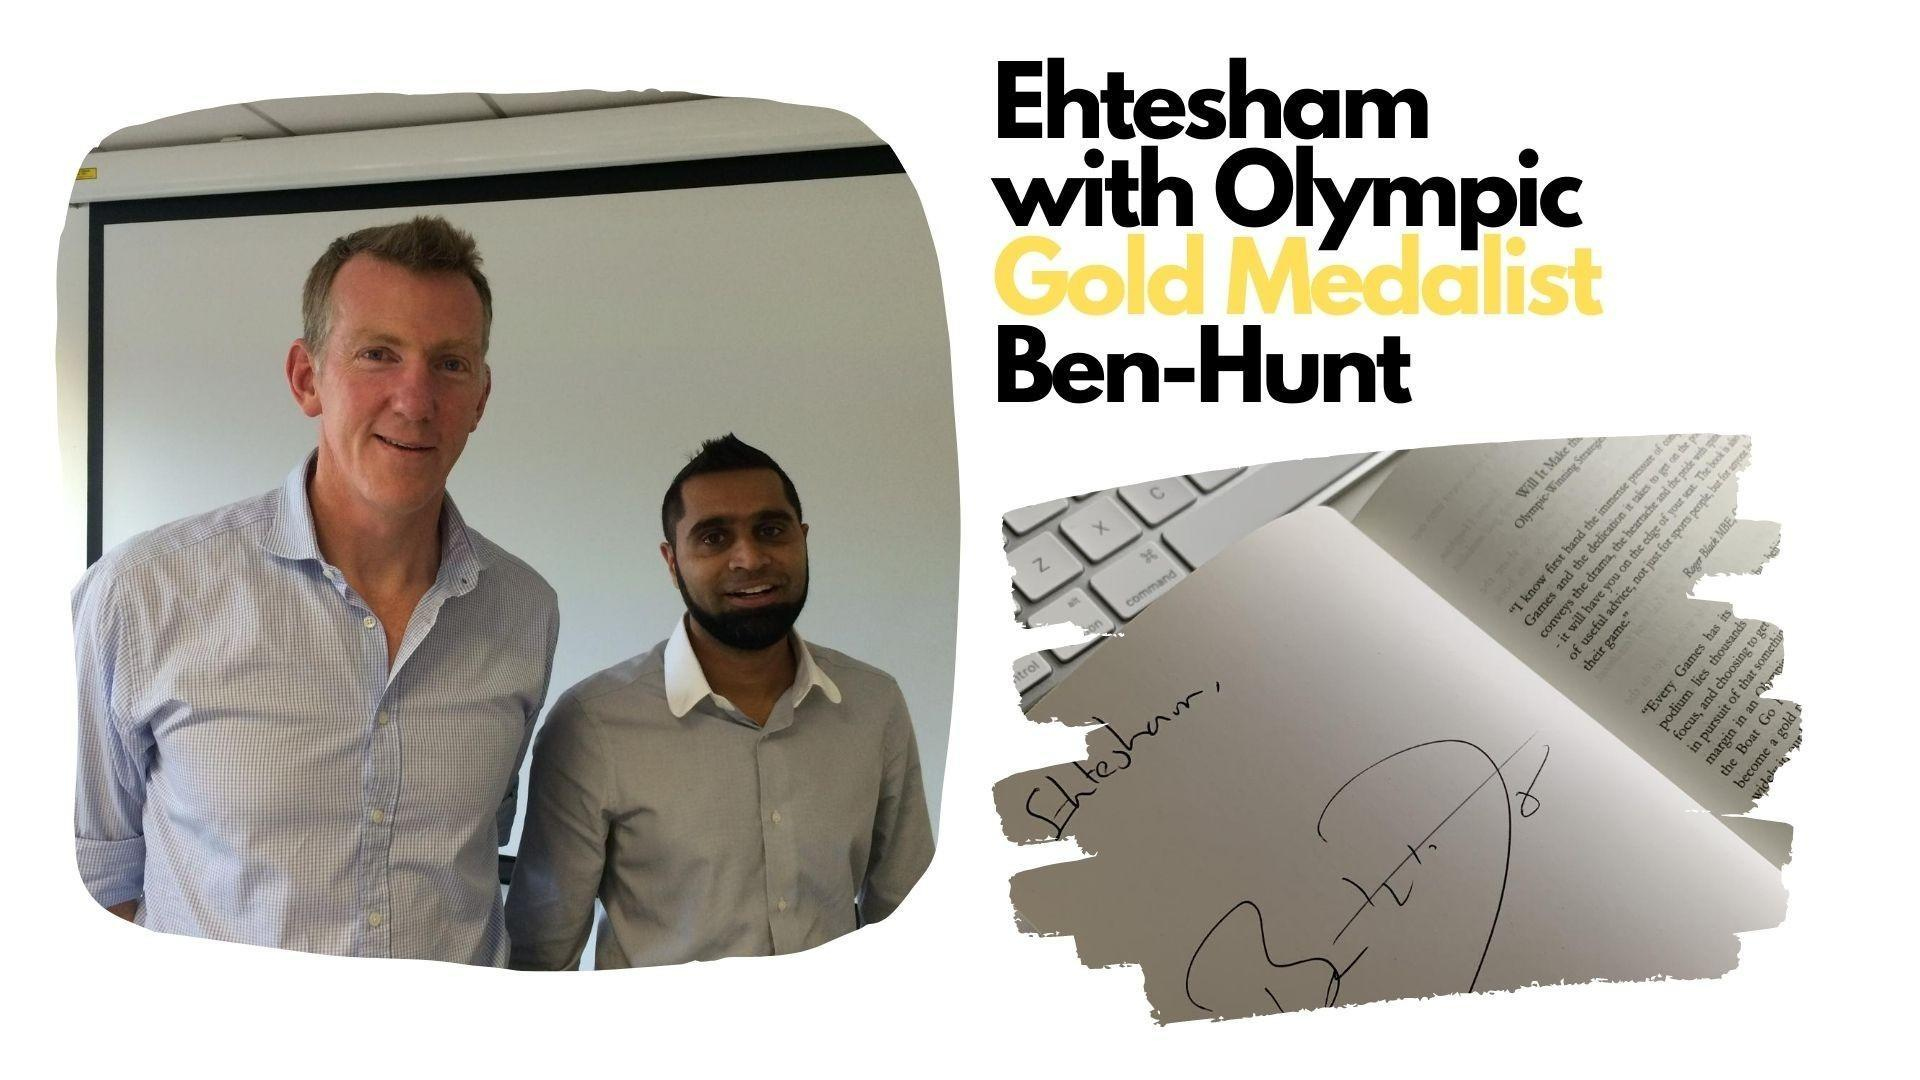 Ehtesham with Olympic Gold Medalist